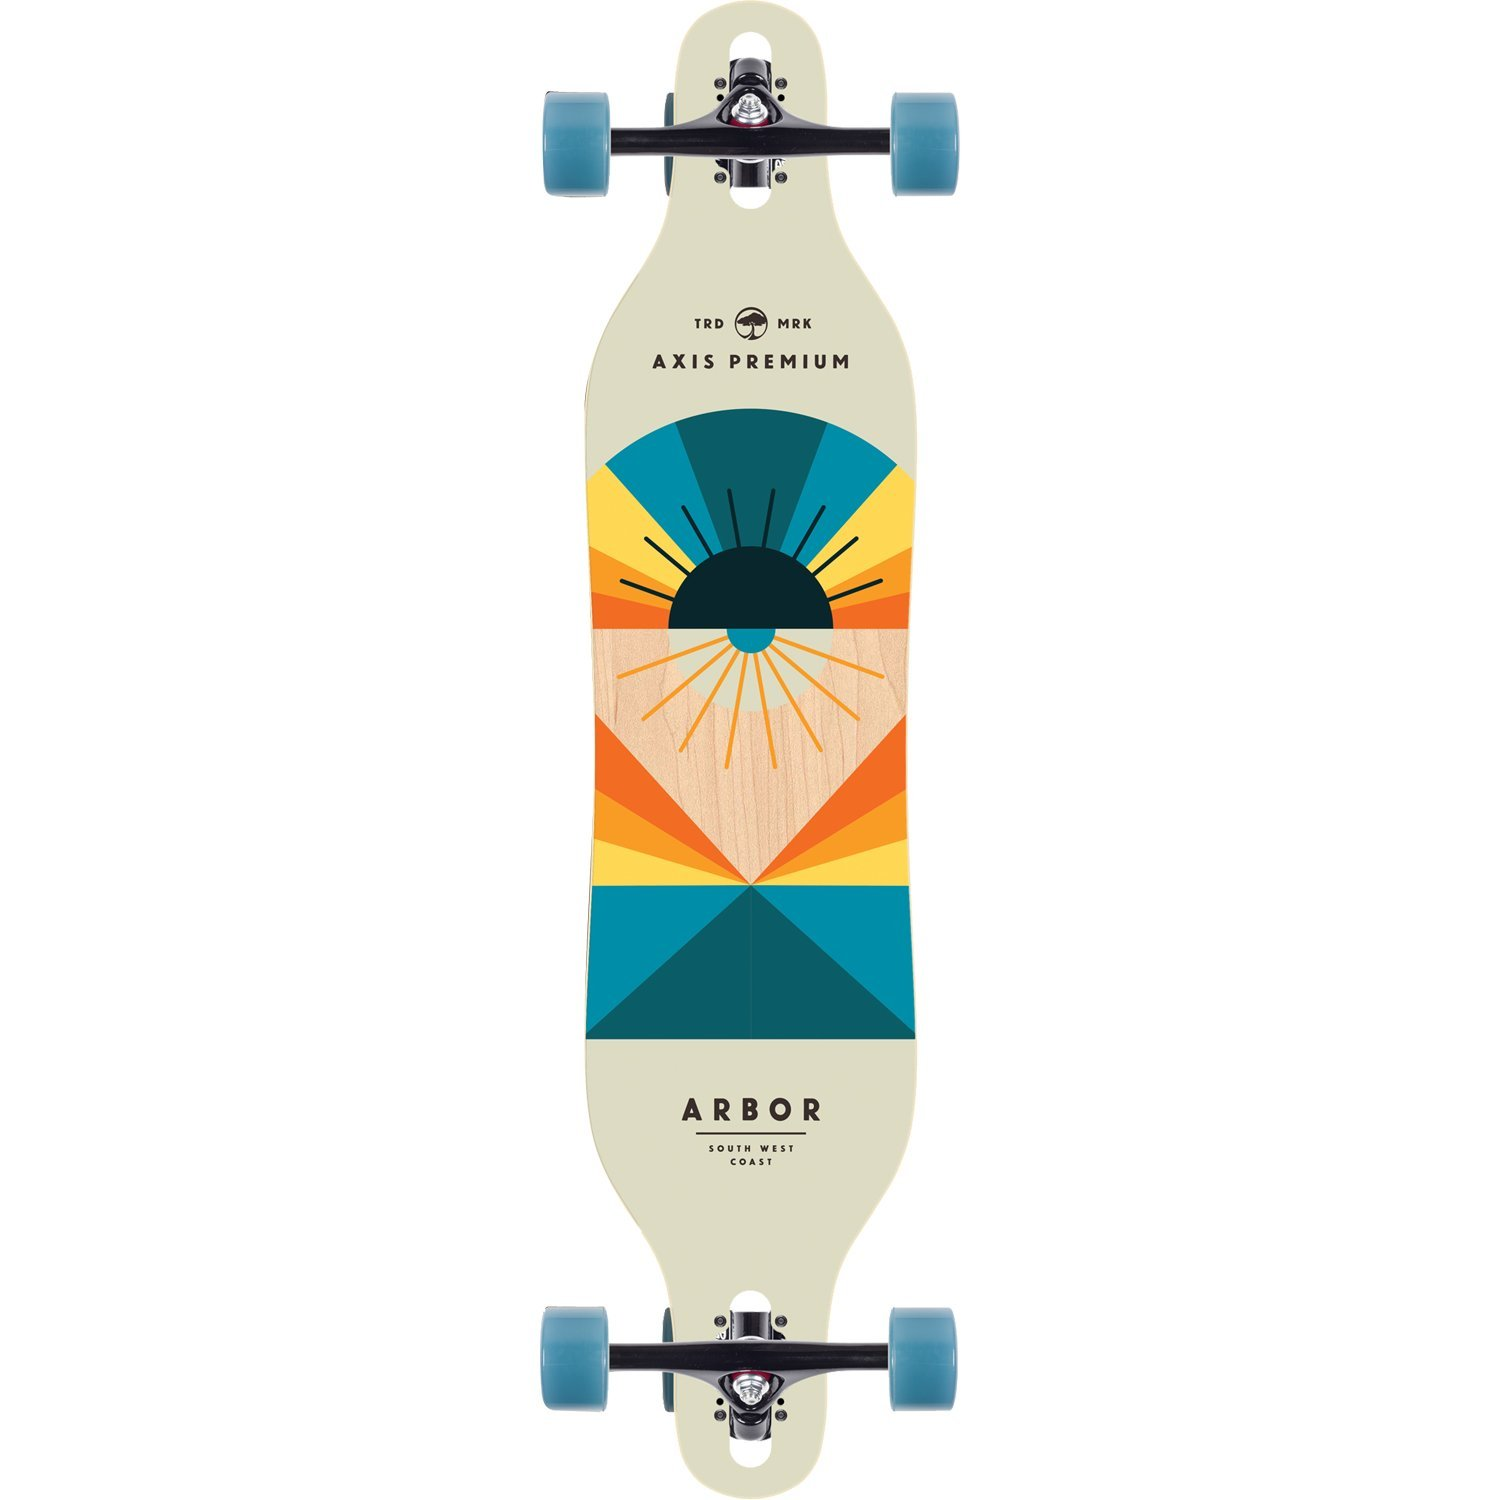 Arbor Flagship Premium Axis Complete Longboard Skateboard -8.8x40 - Brand new 2017 Model!